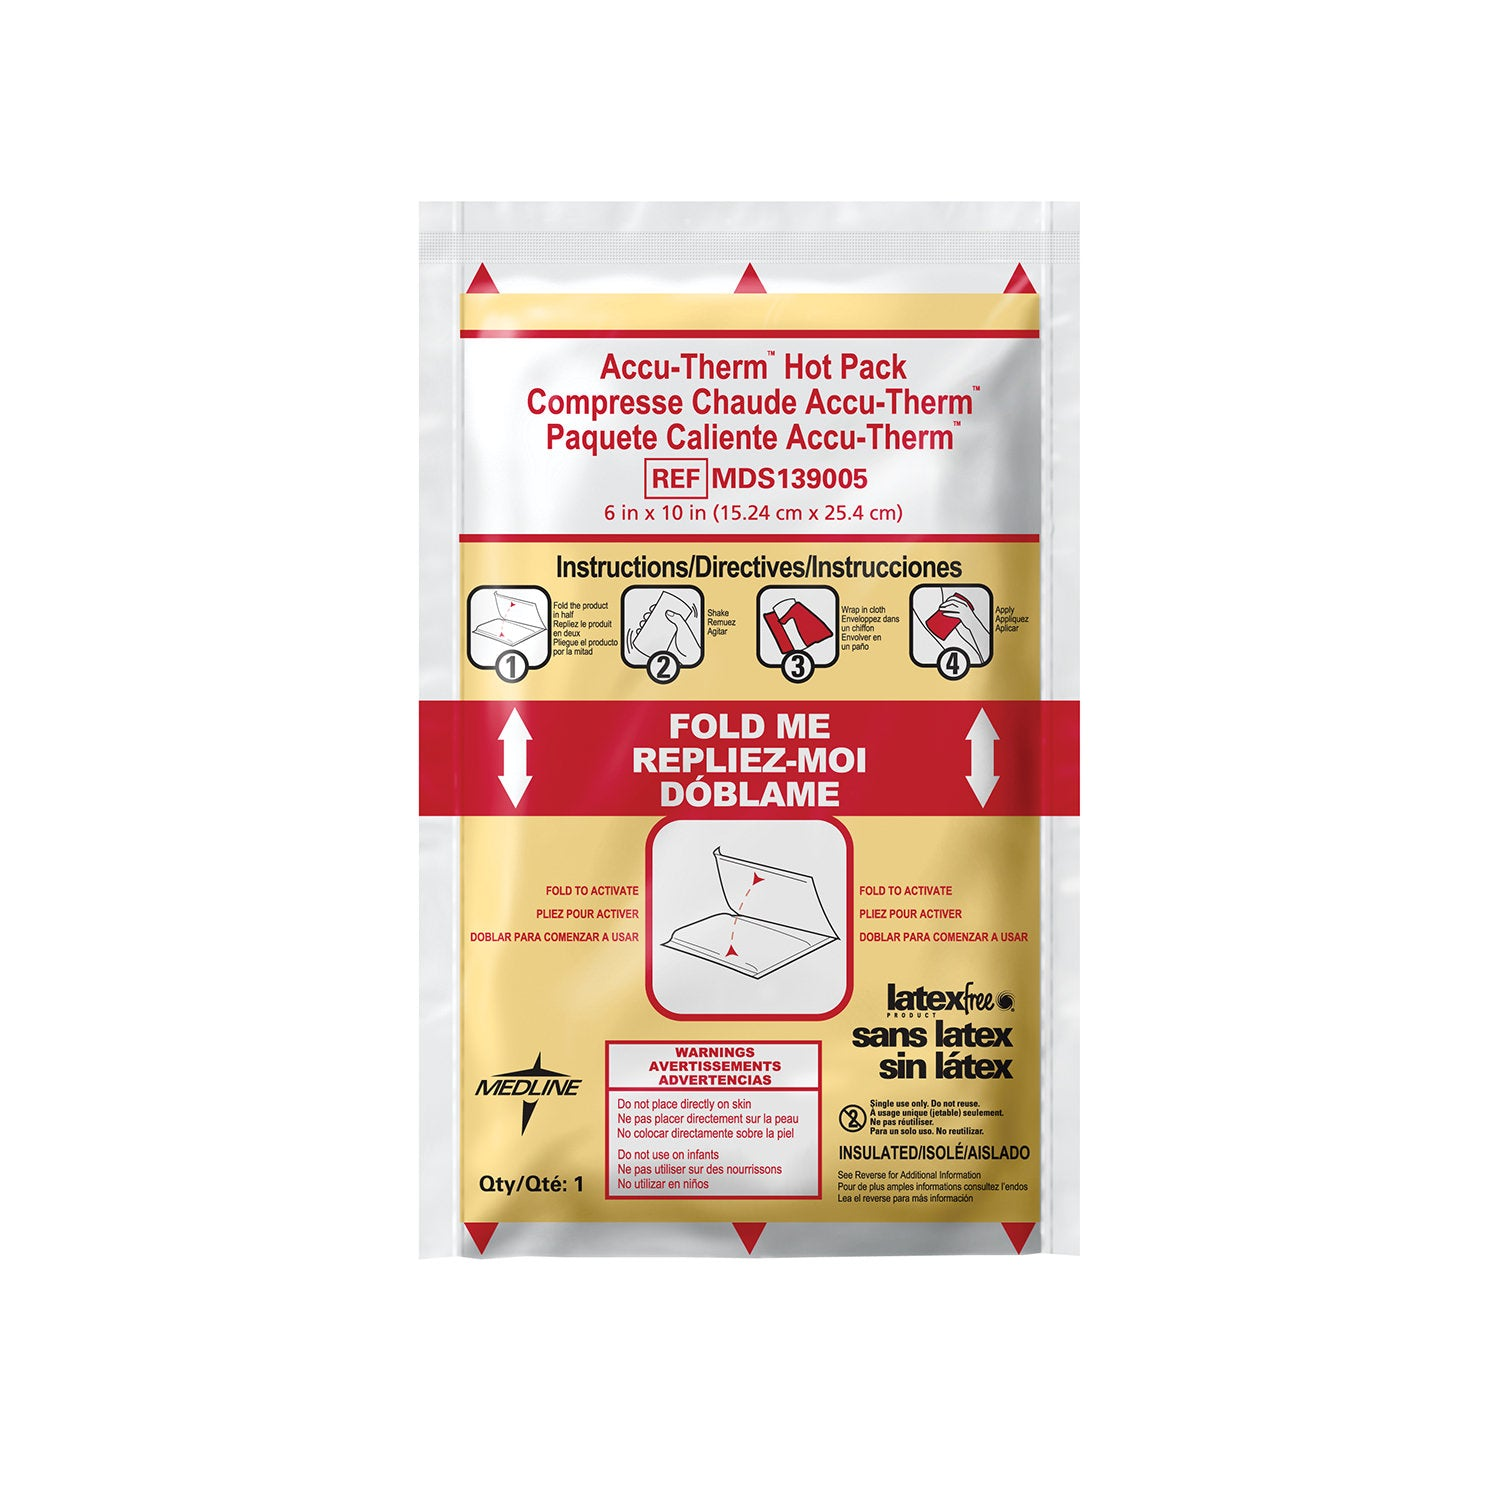 Accu-Therm Instant Hot Packs (Insulated or Non-Insulated)